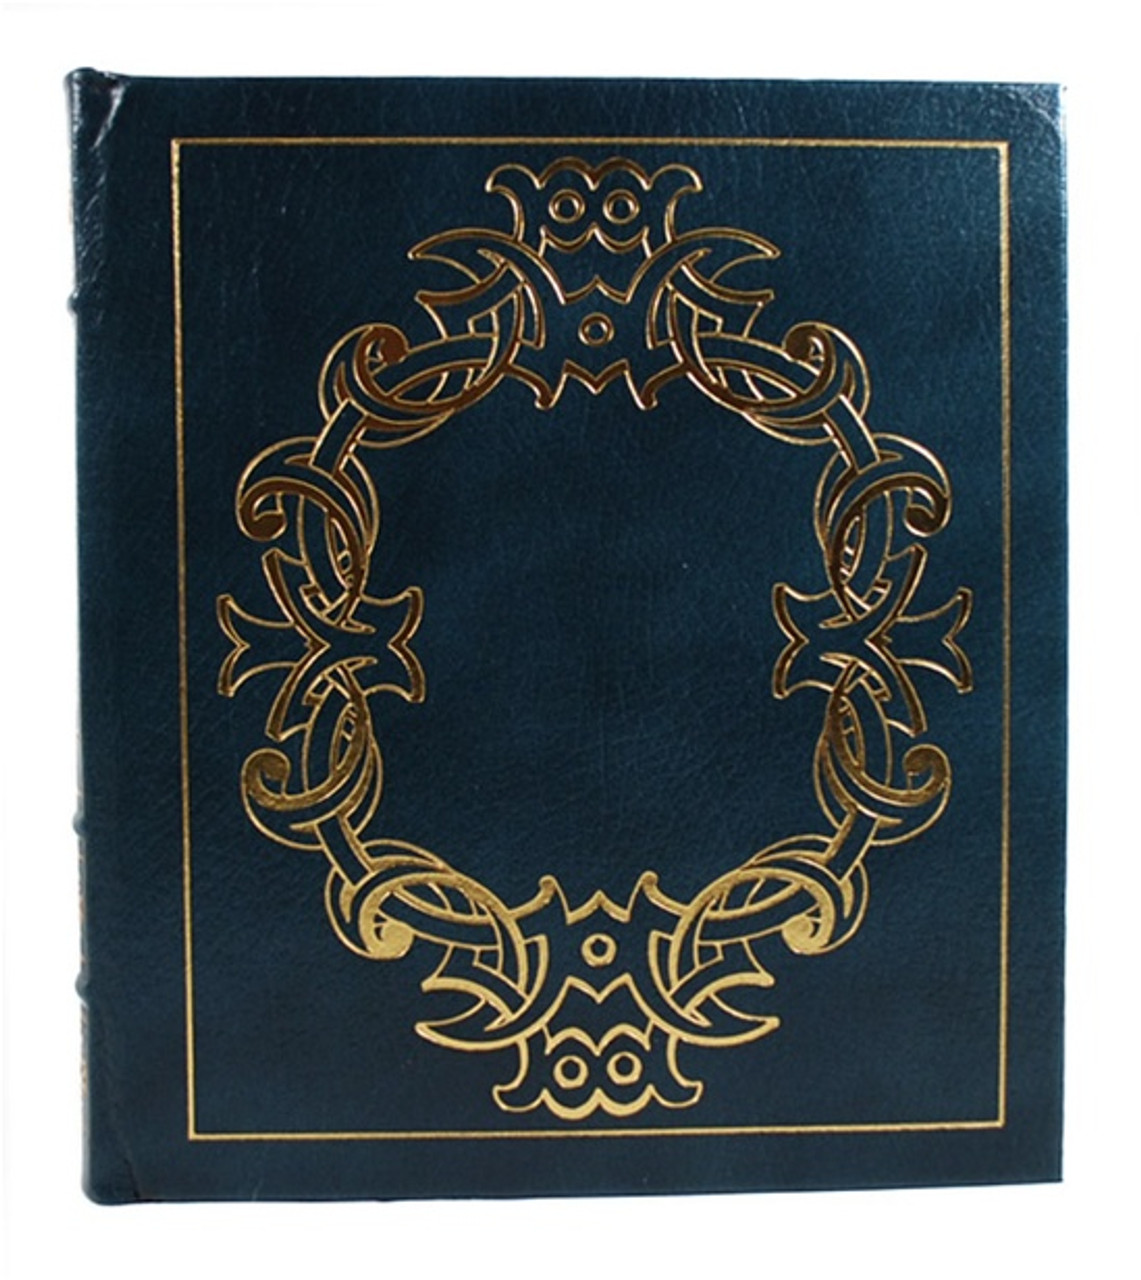 Easton Press 'The Stranger' Albert Camus, Leather Bound Collector's Edition